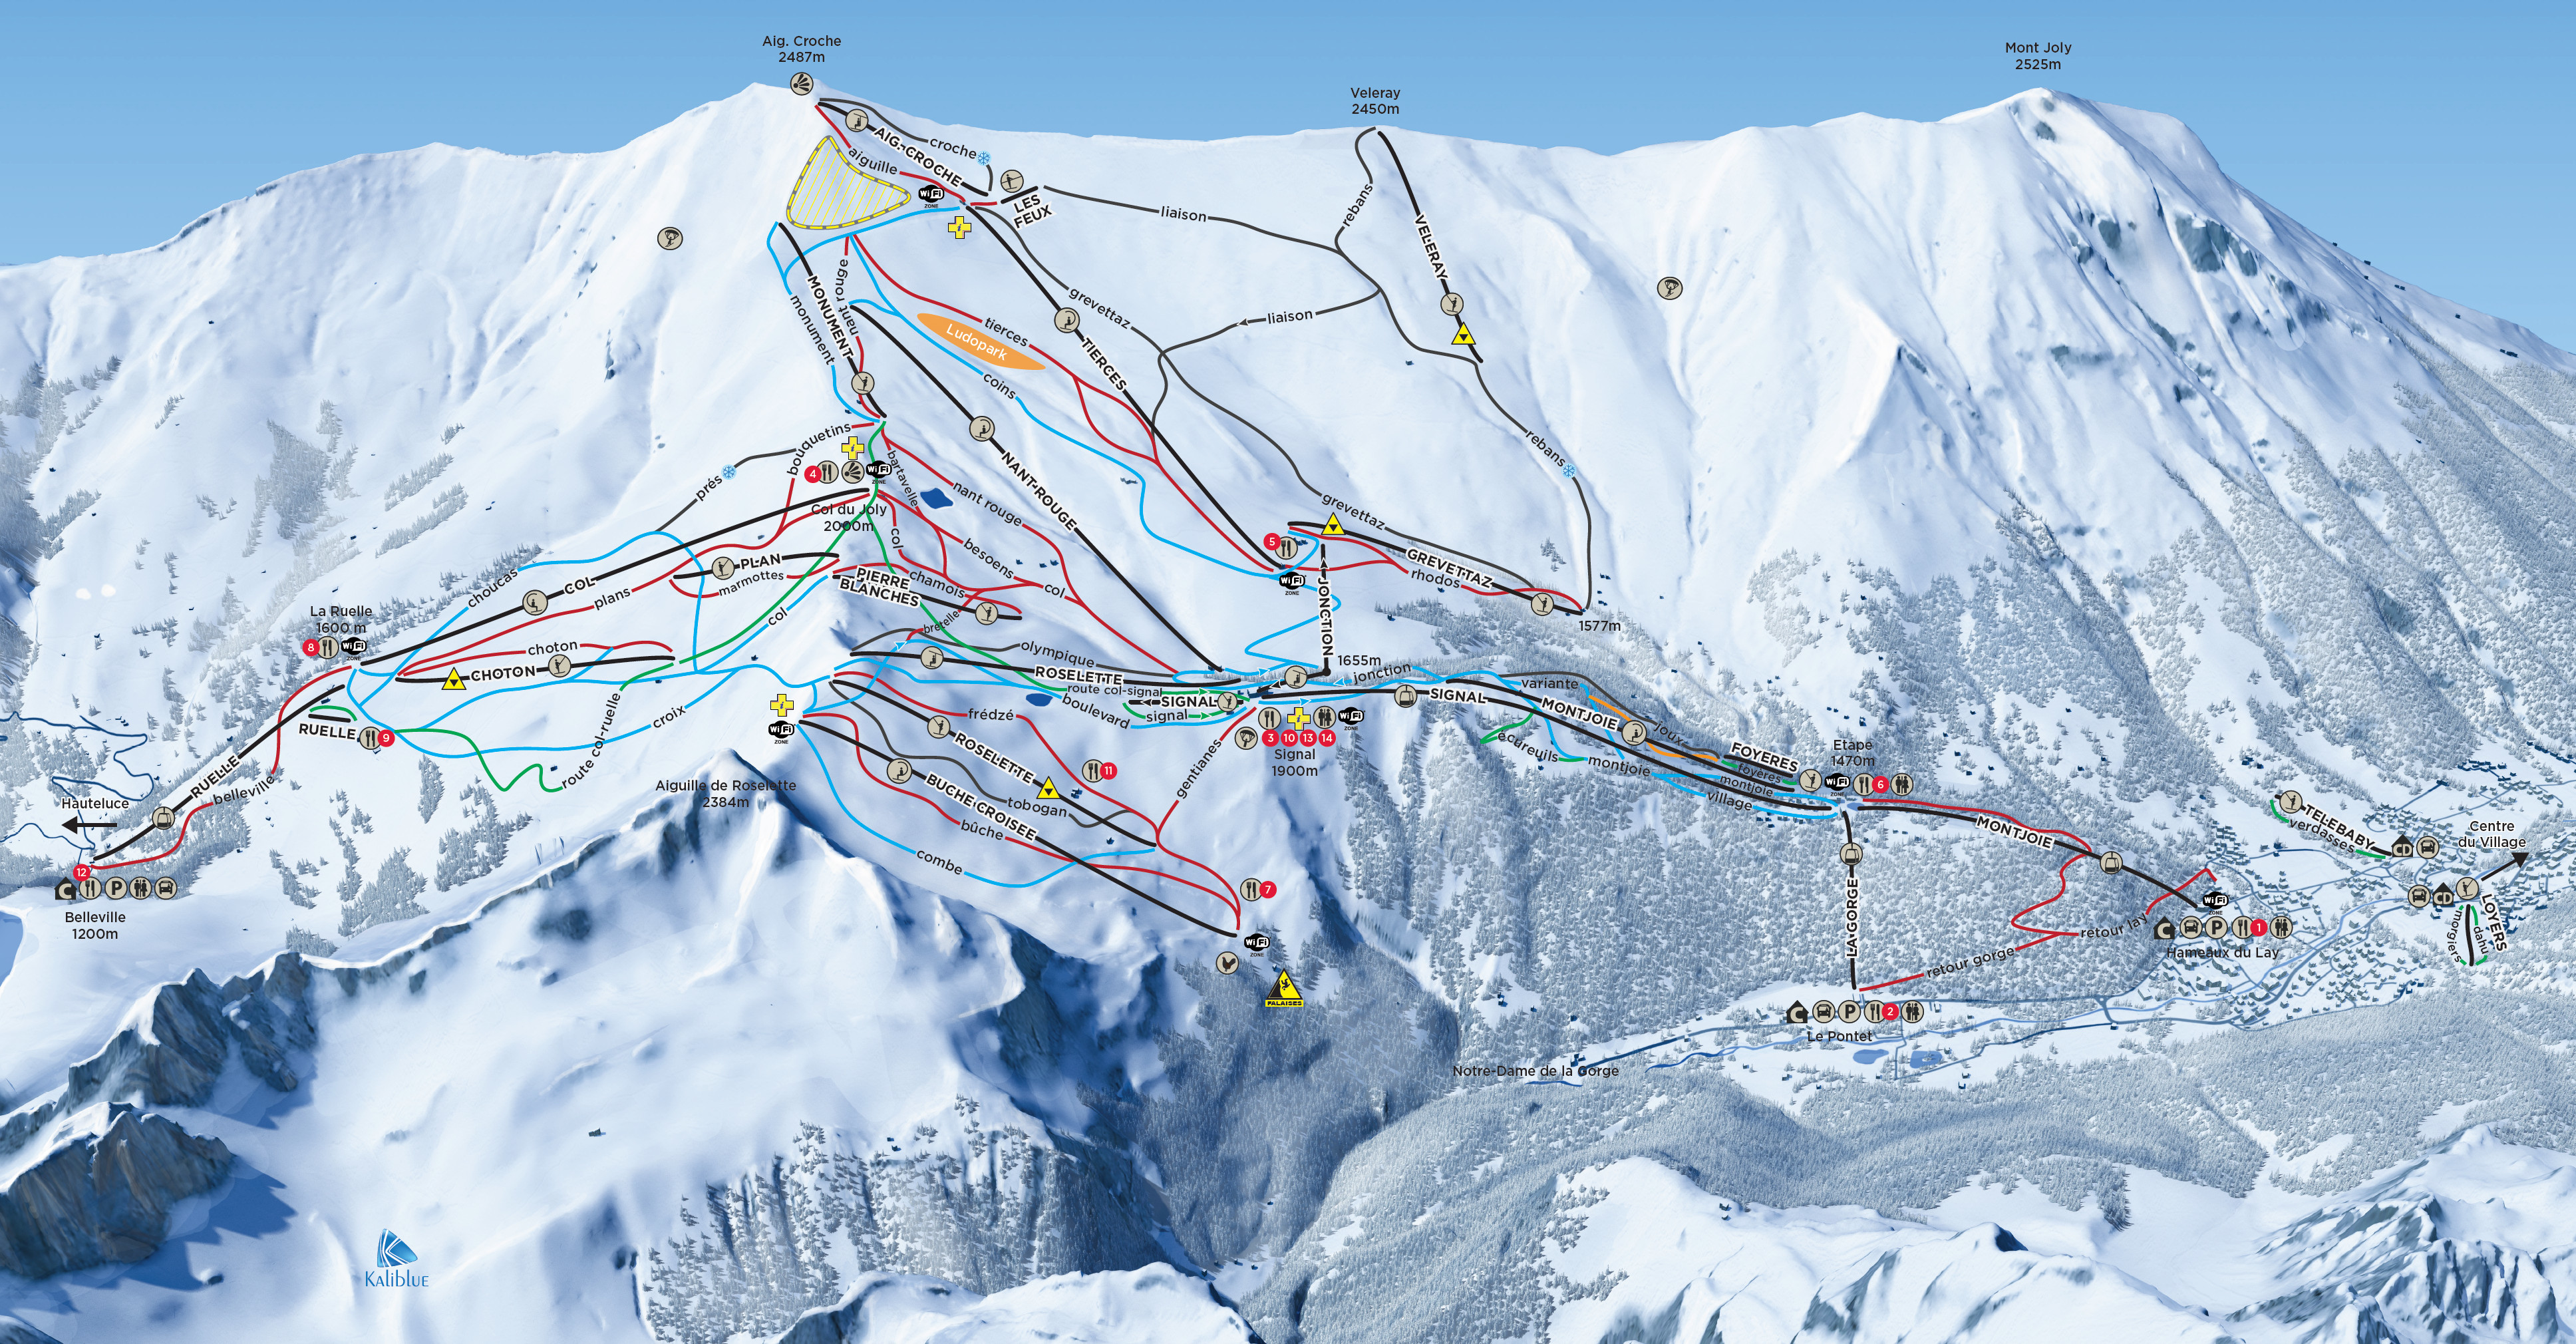 ad5d82588 View the trails and lifts at Les Contamines Montjoie with our interactive  trail map of the ski resort. Plan out your day before heading to Les  Contamines ...